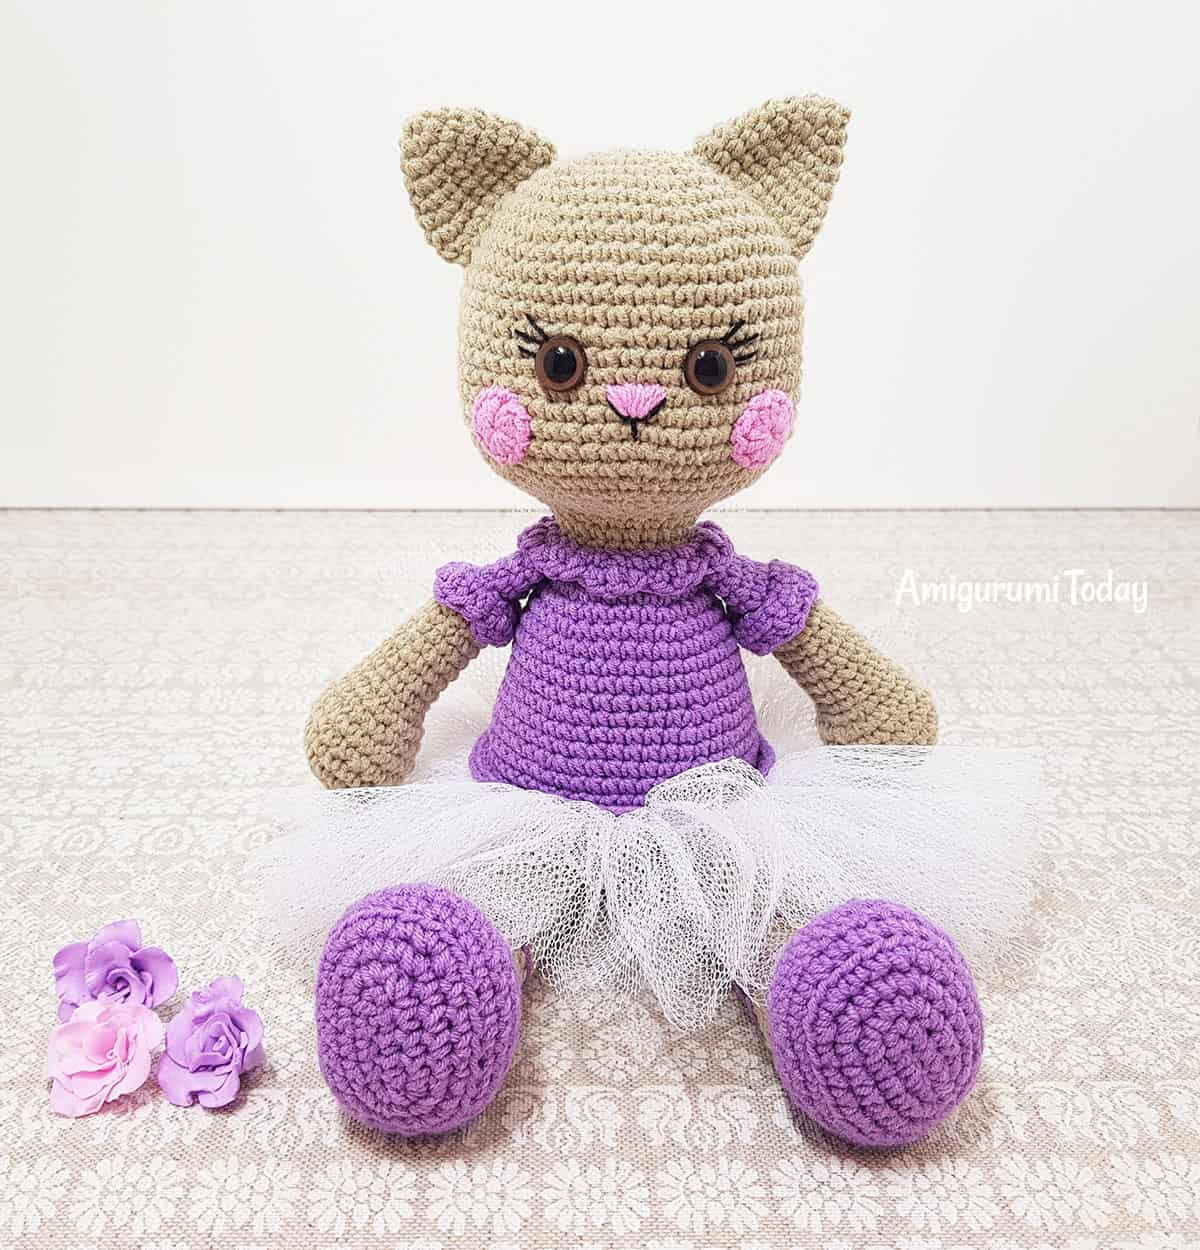 Ballerina cat doll crochet pattern amigurumi today ballerina cat doll amigurumi pattern by amigurumi today dt1010fo